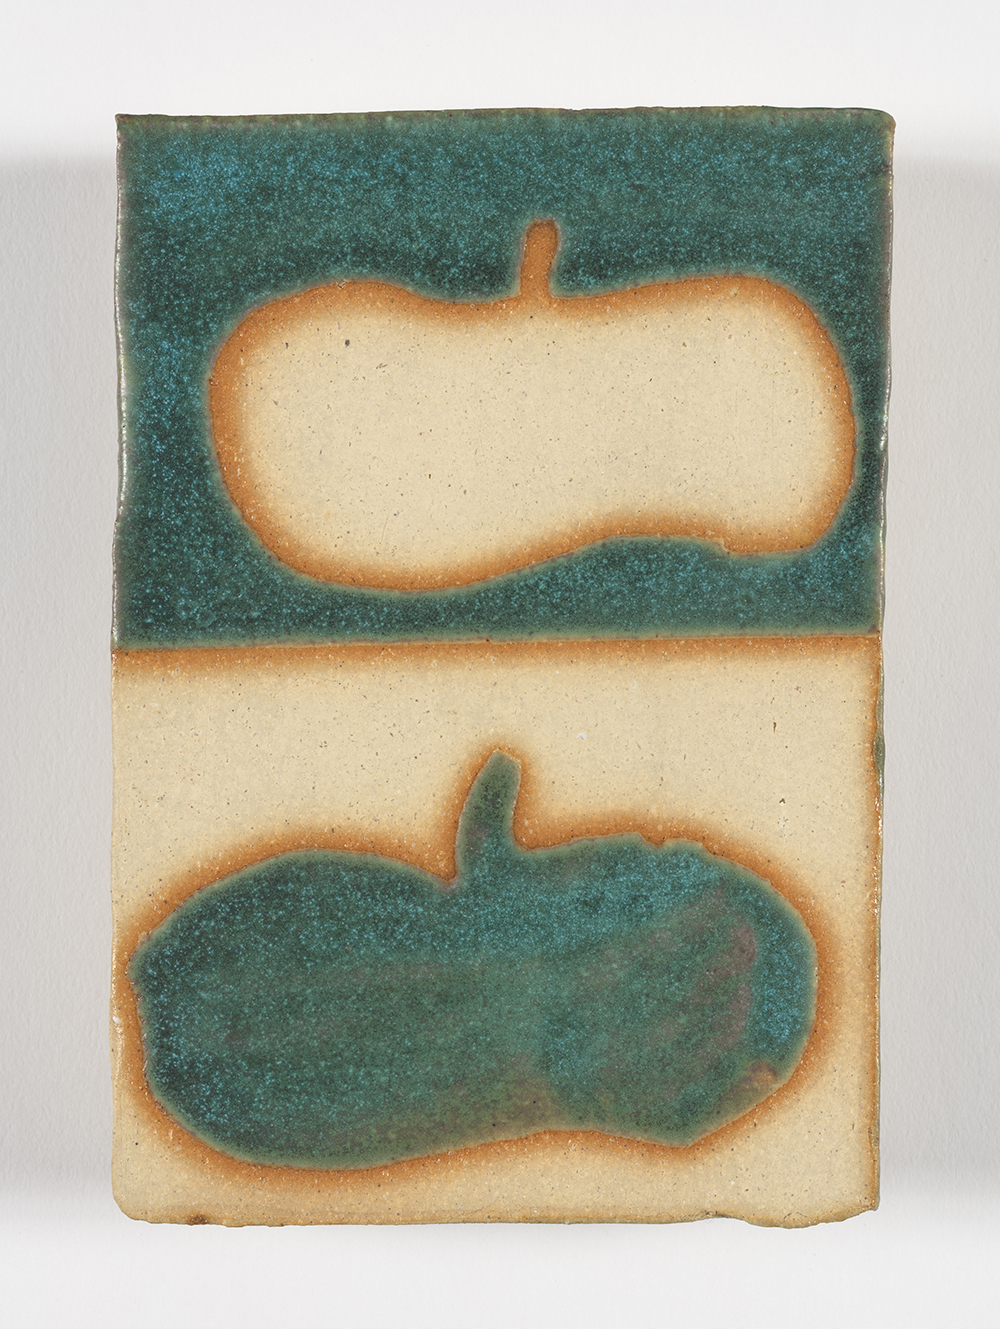 Kevin McNamee-Tweed.<em> Beret Debt</em>, 2019. Glazed ceramic, 5 1/4 x 3 1/2 inches (13.3 x 8.9 cm)